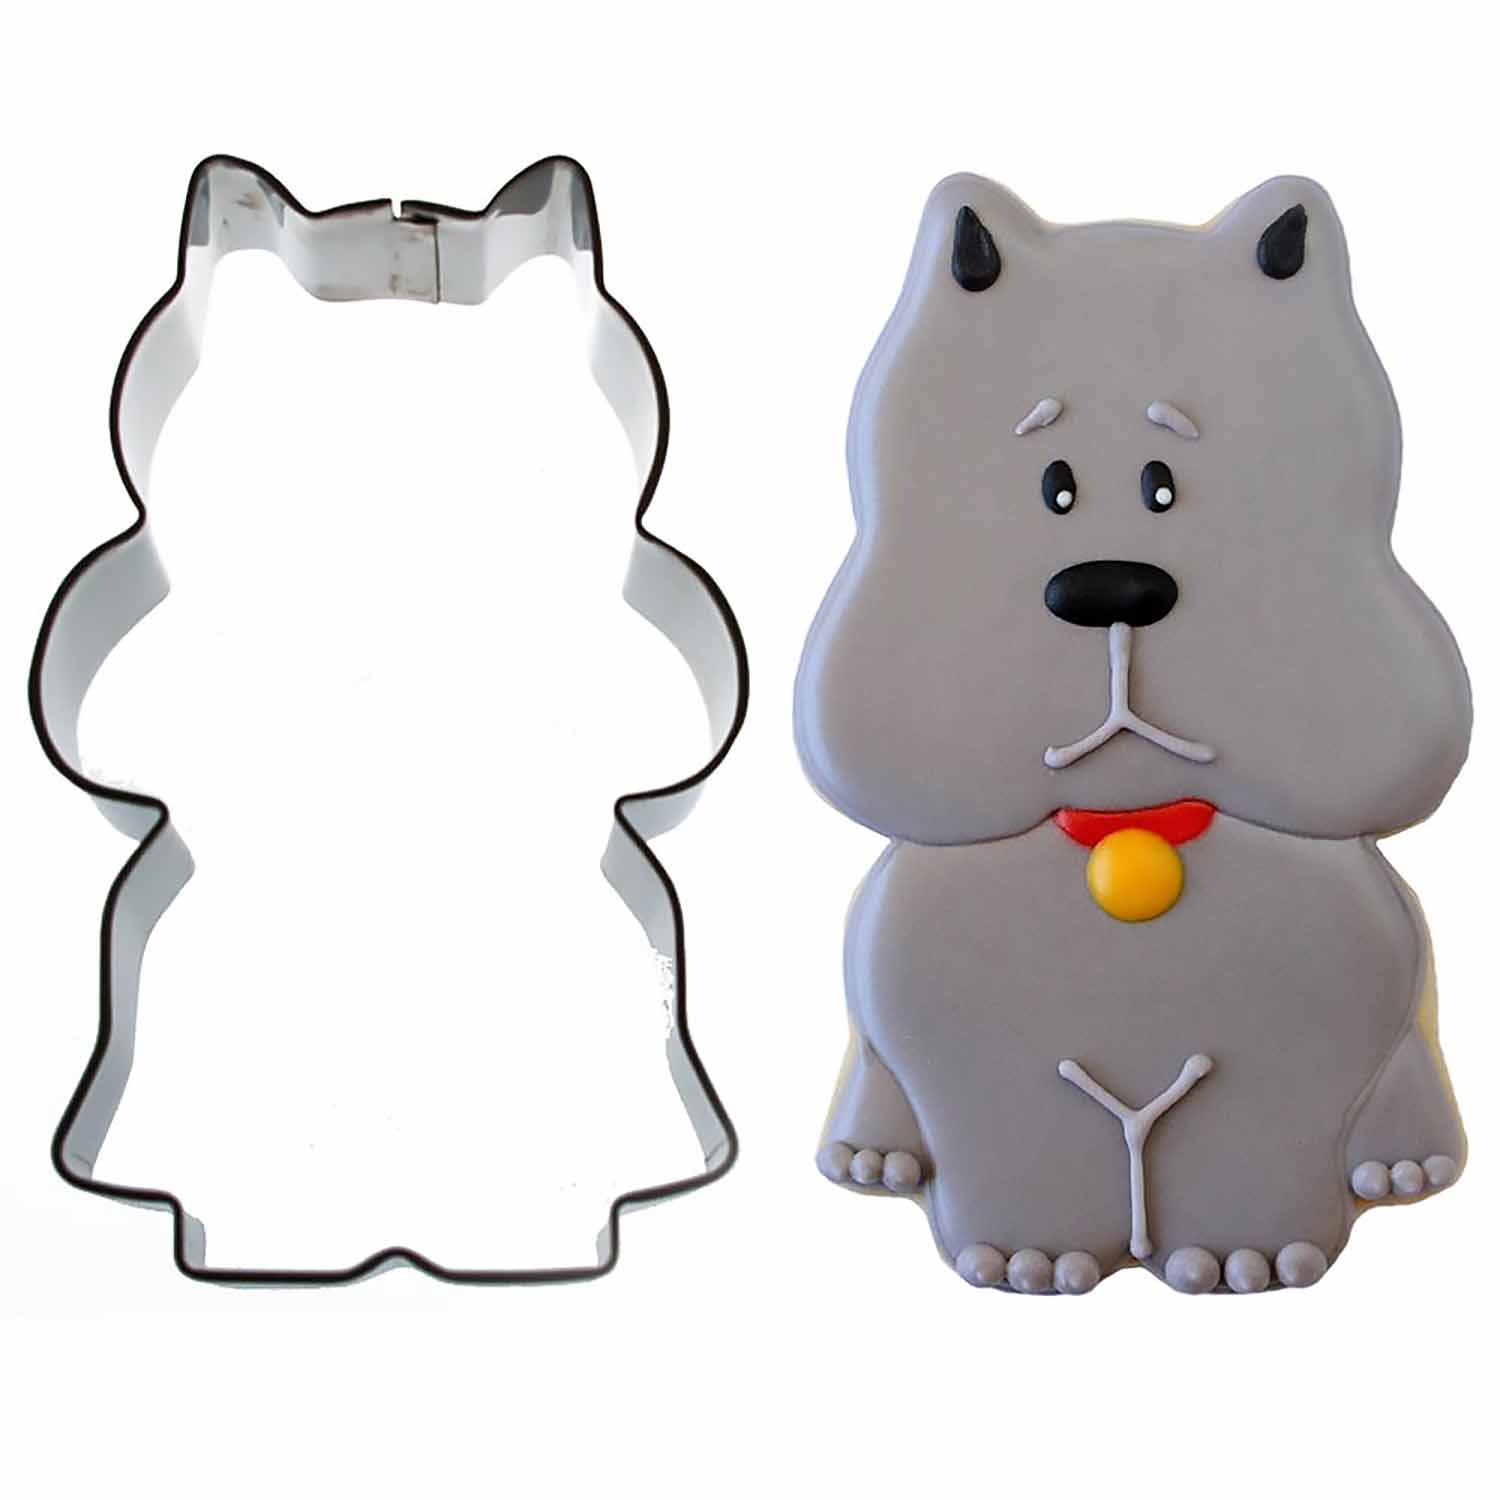 Sitting Scottie Dog Cookie Cutter by Sweet Sugarbelle